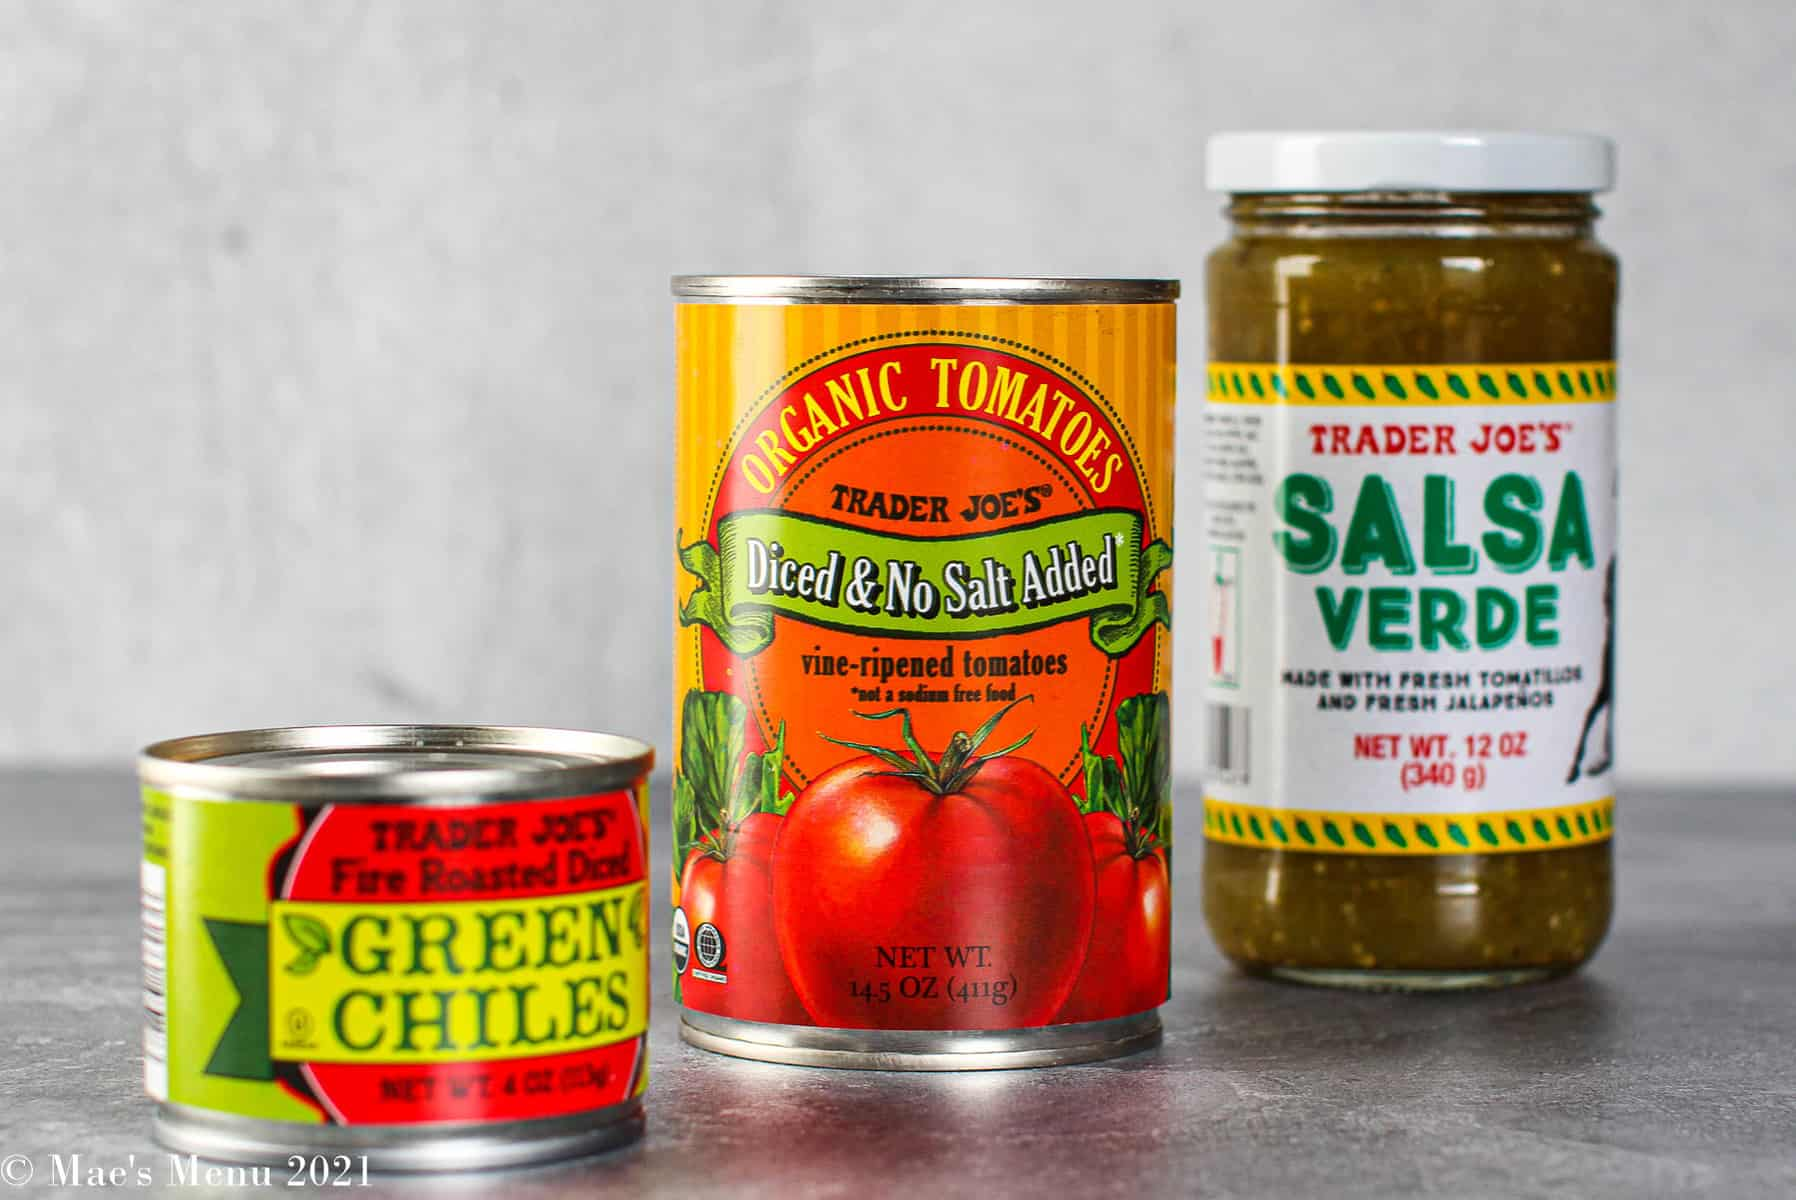 A can of green chili, diced tomatoes, and salsa verde